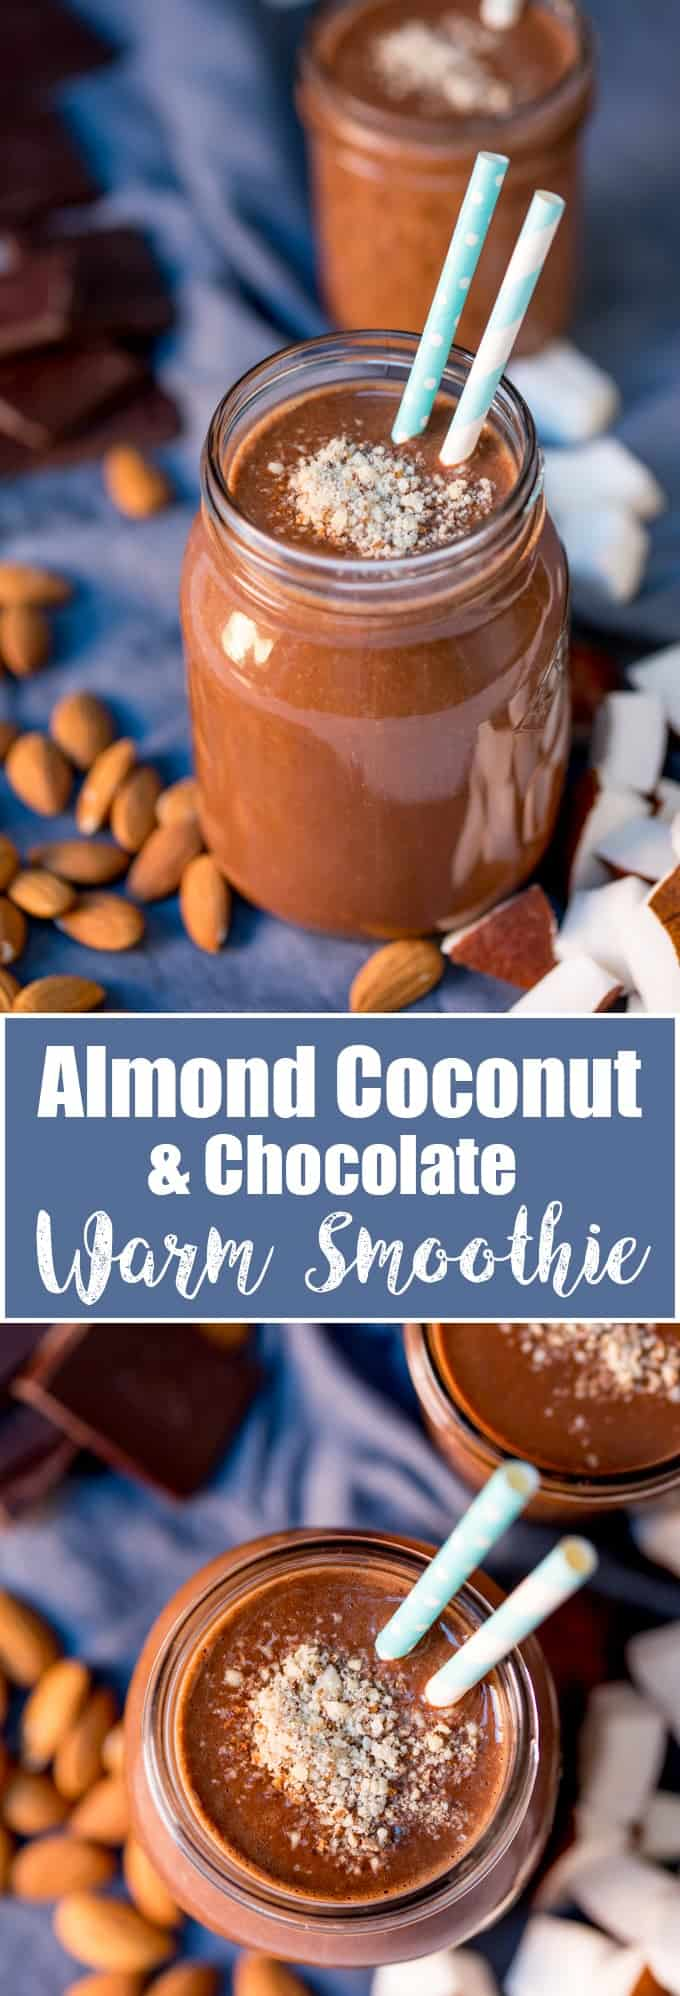 This Almond Coconut Warm Smoothie makes a lovely breakfast on a cold day! Lots of nutritious goodies in there to make you feel great! Gluten free too!